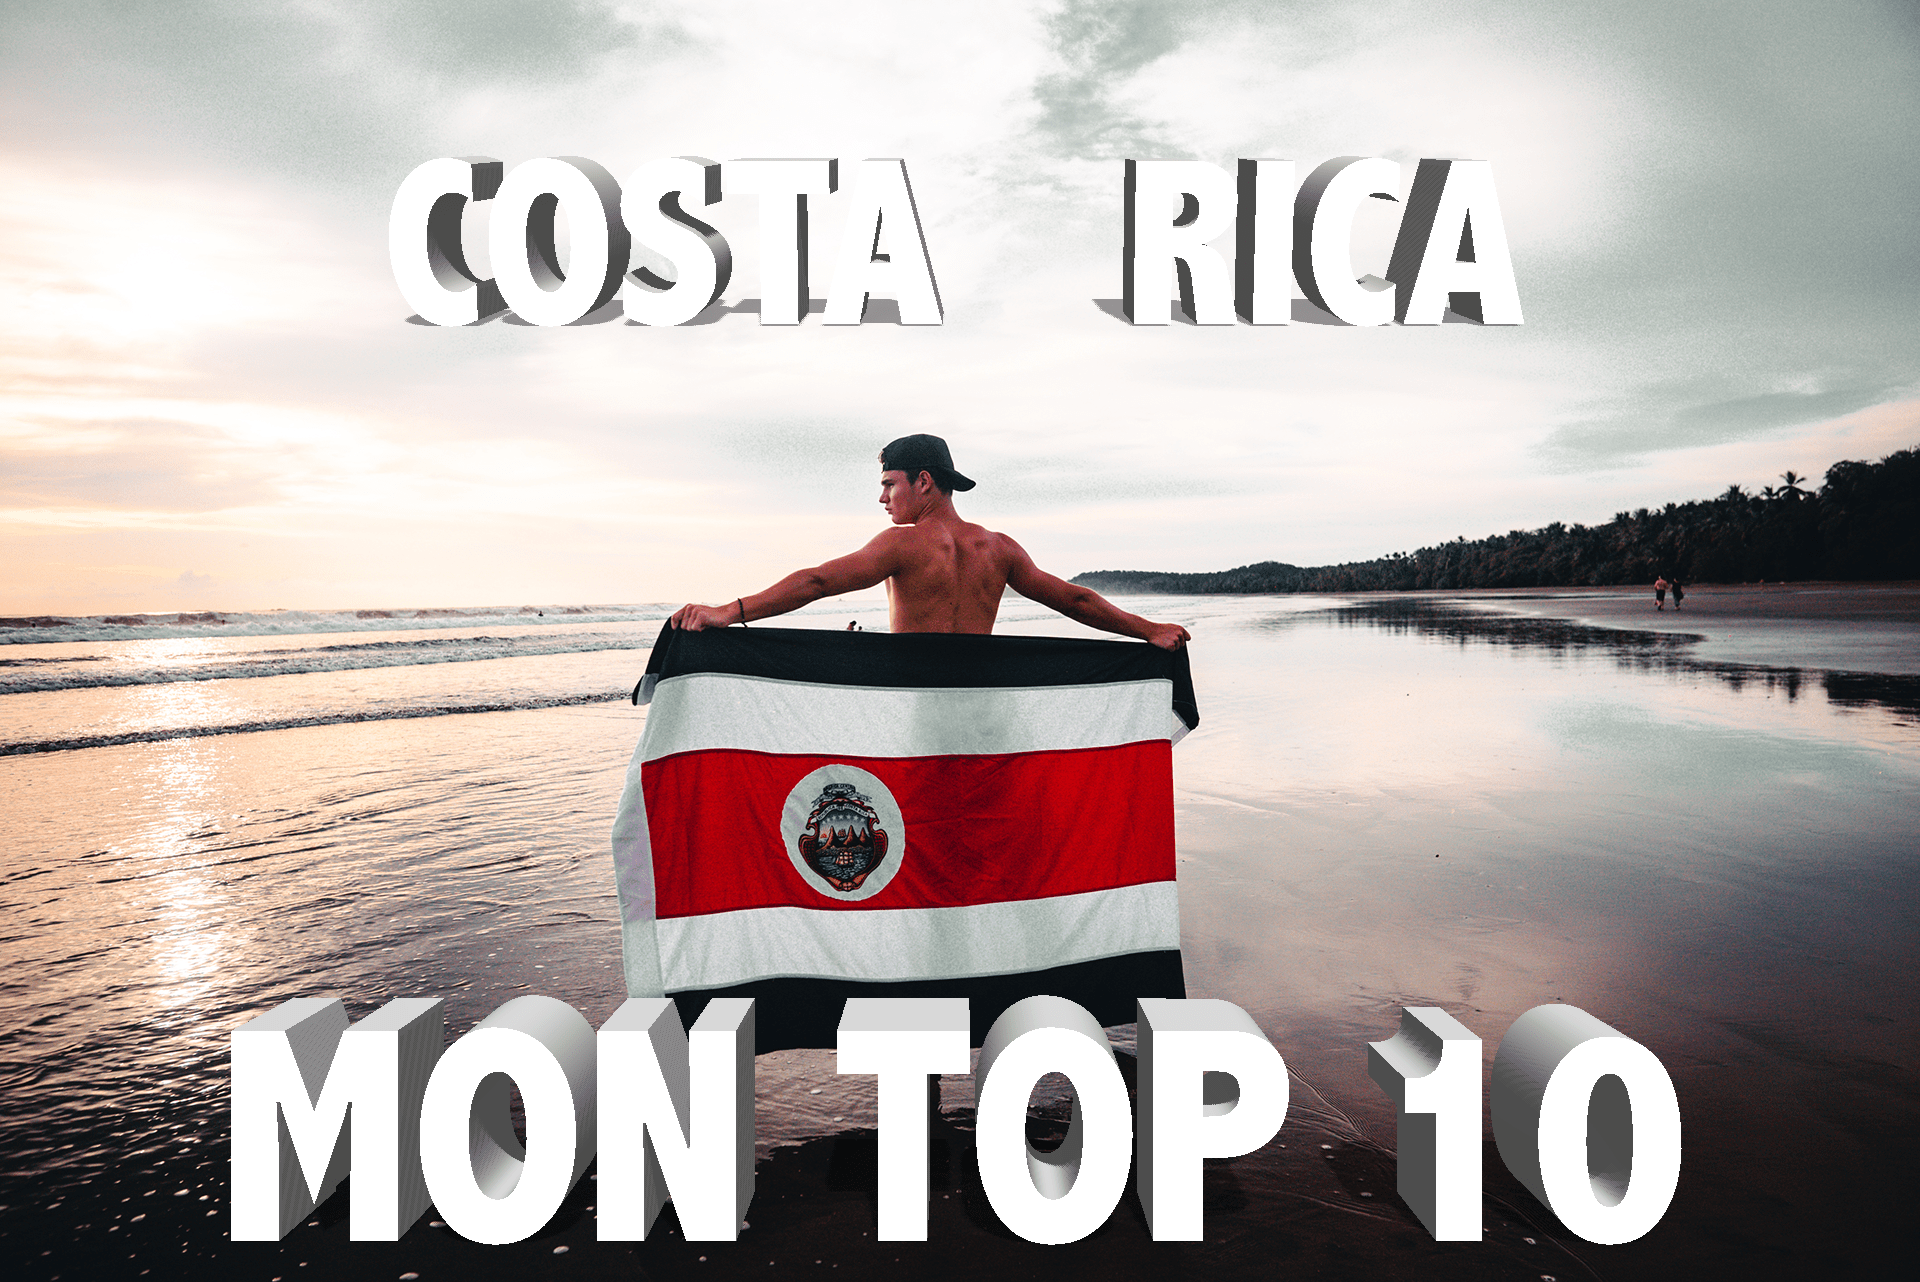 Top10_costa rica_love_incroyable_love